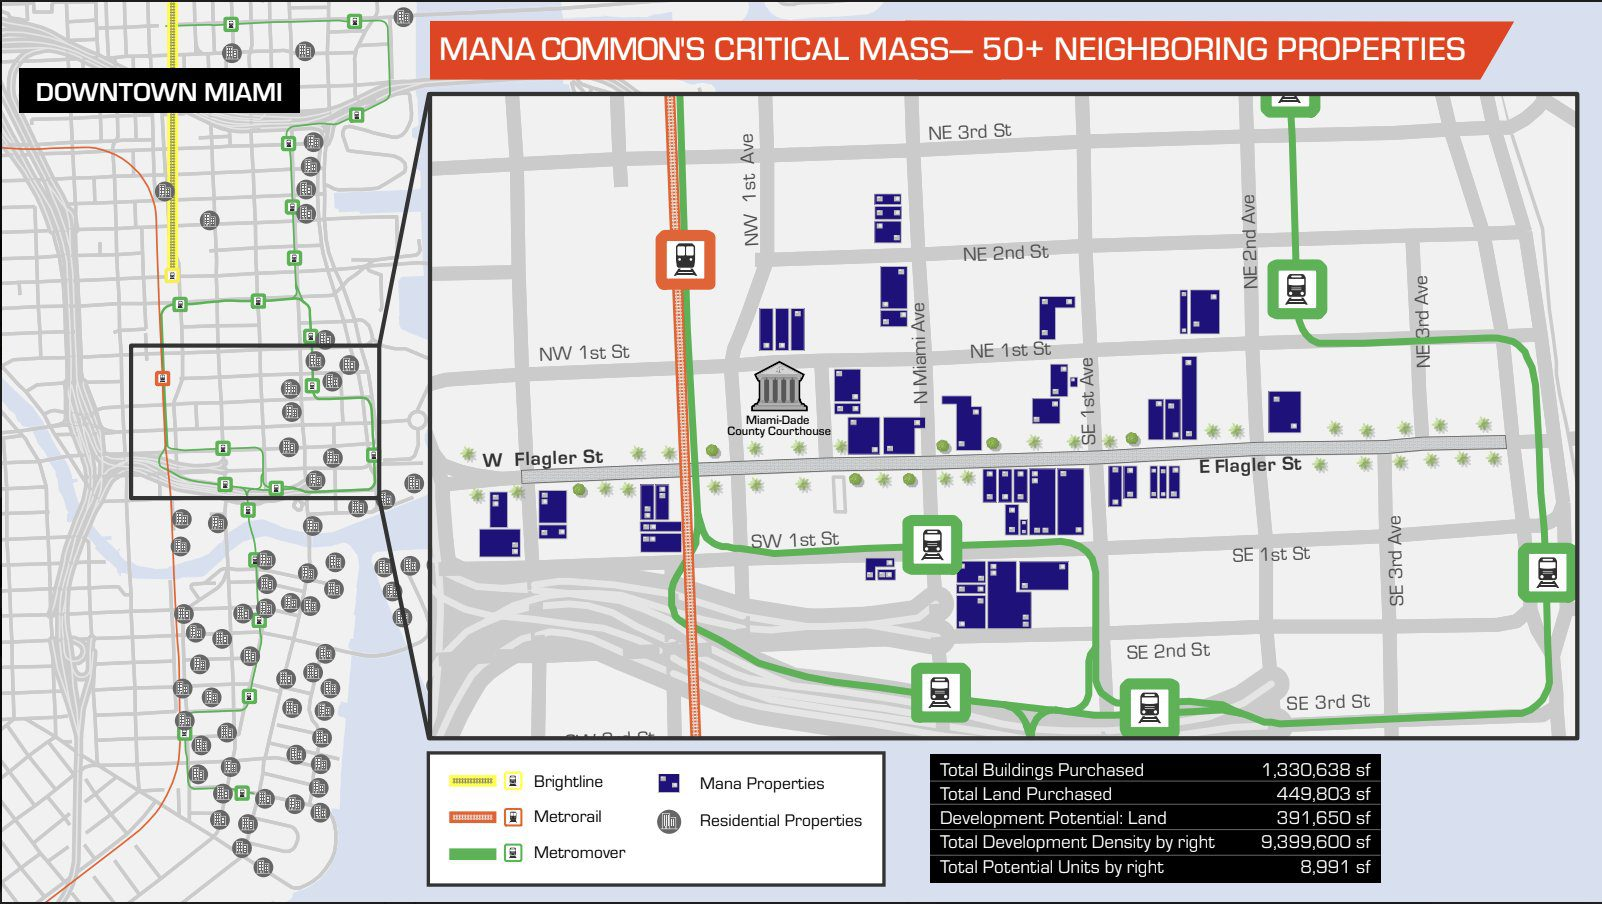 Plug and Play on the way to downtown Miami, as part of MANA Common